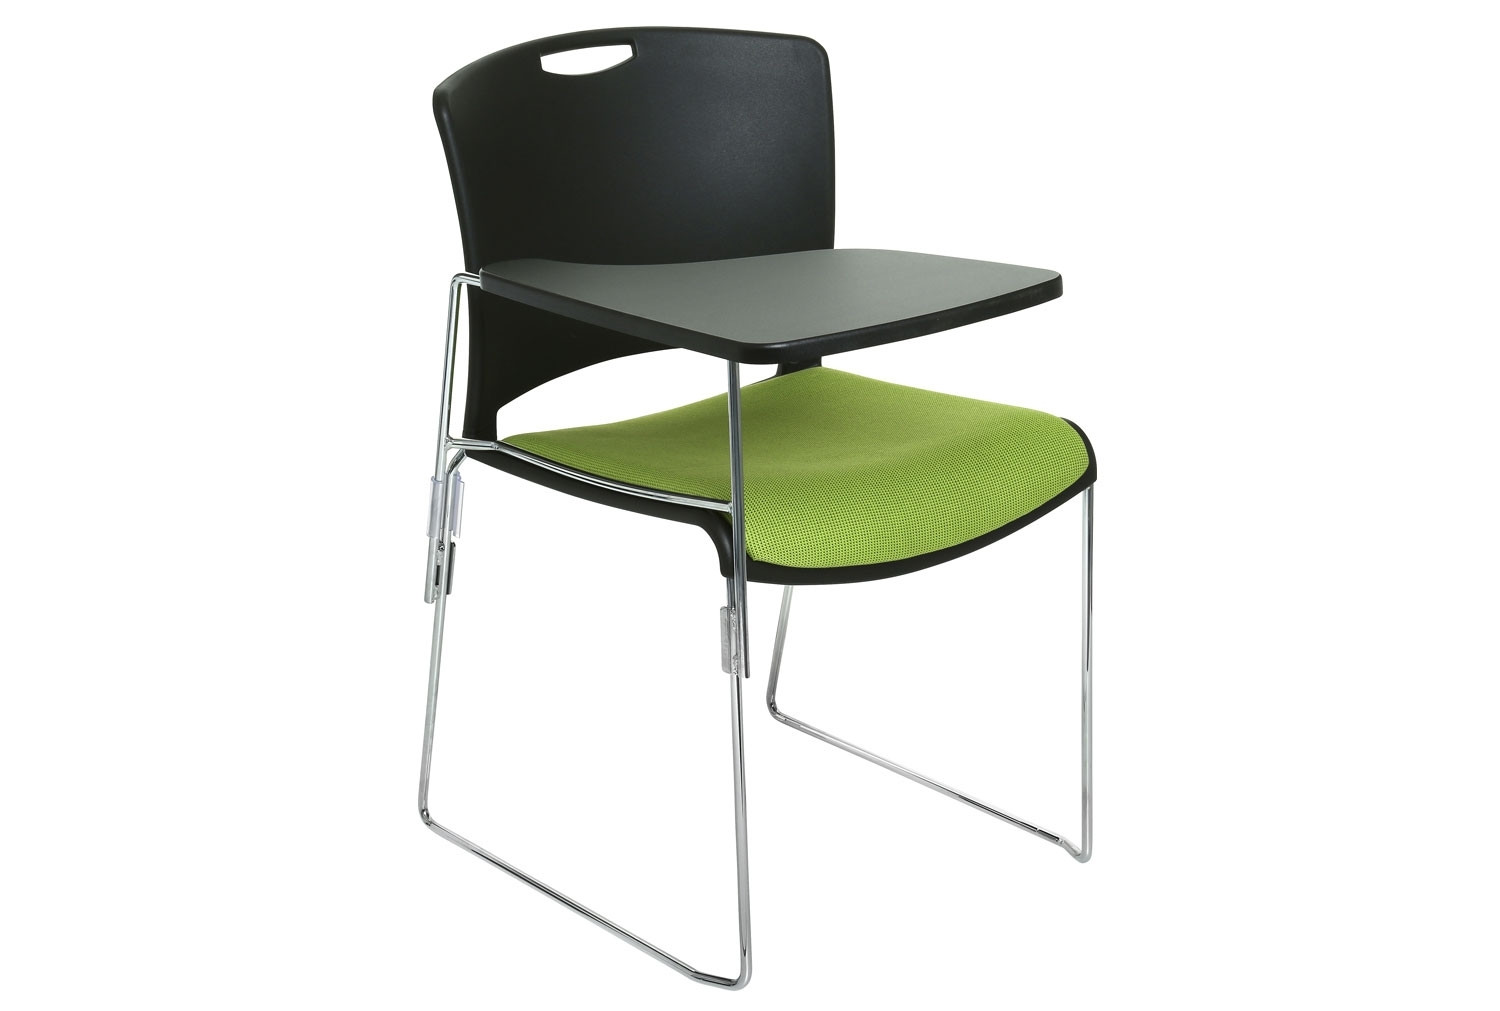 Alberta Chair With Upholstered Seat & Right Hand Writing Tablet